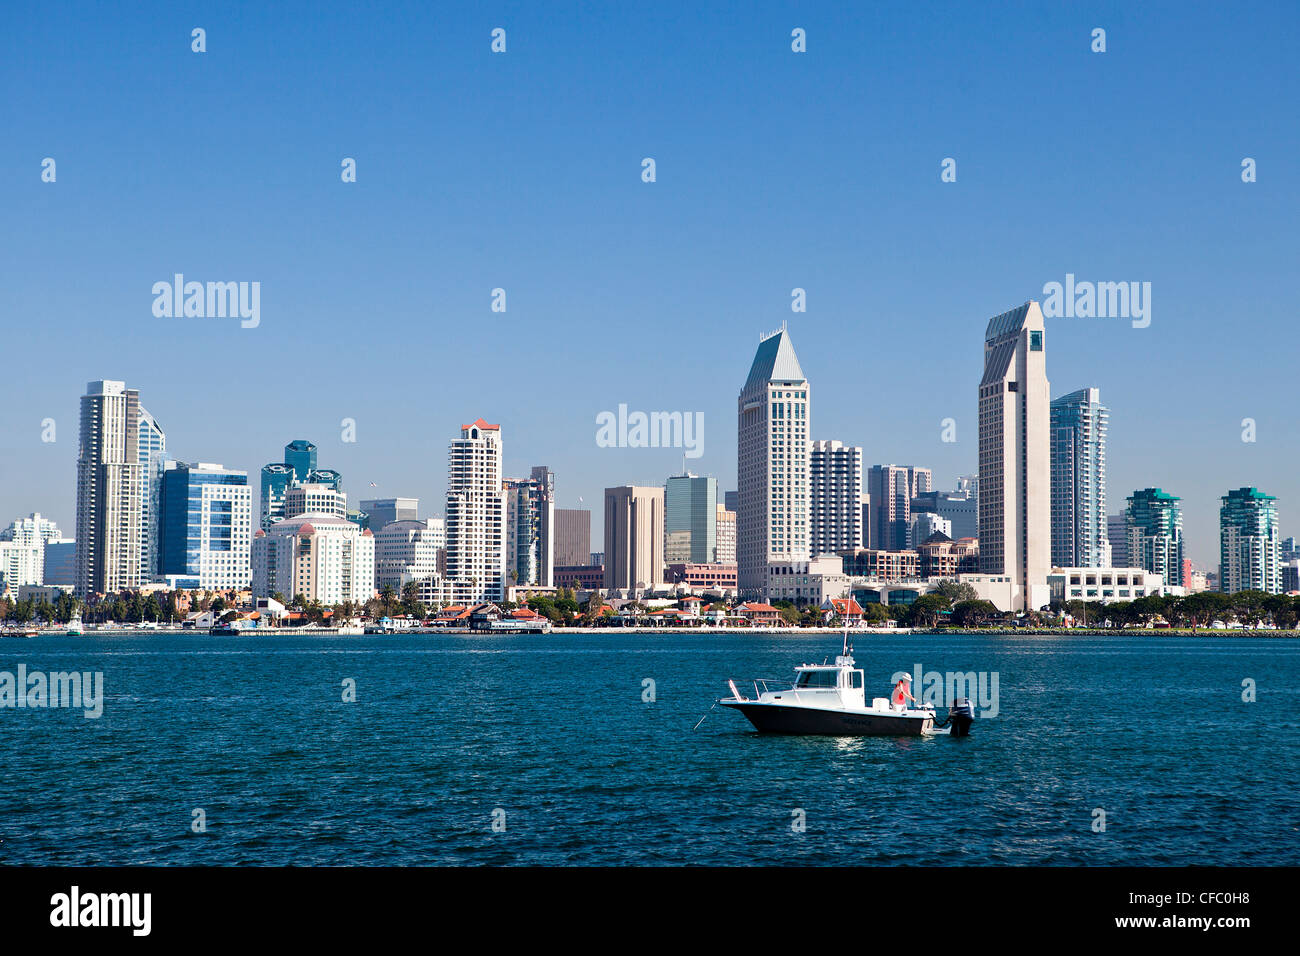 USA, United States, America, California, San Diego, City, Downtown, from Coronado, peninsula, bay, boat, downtown, - Stock Image